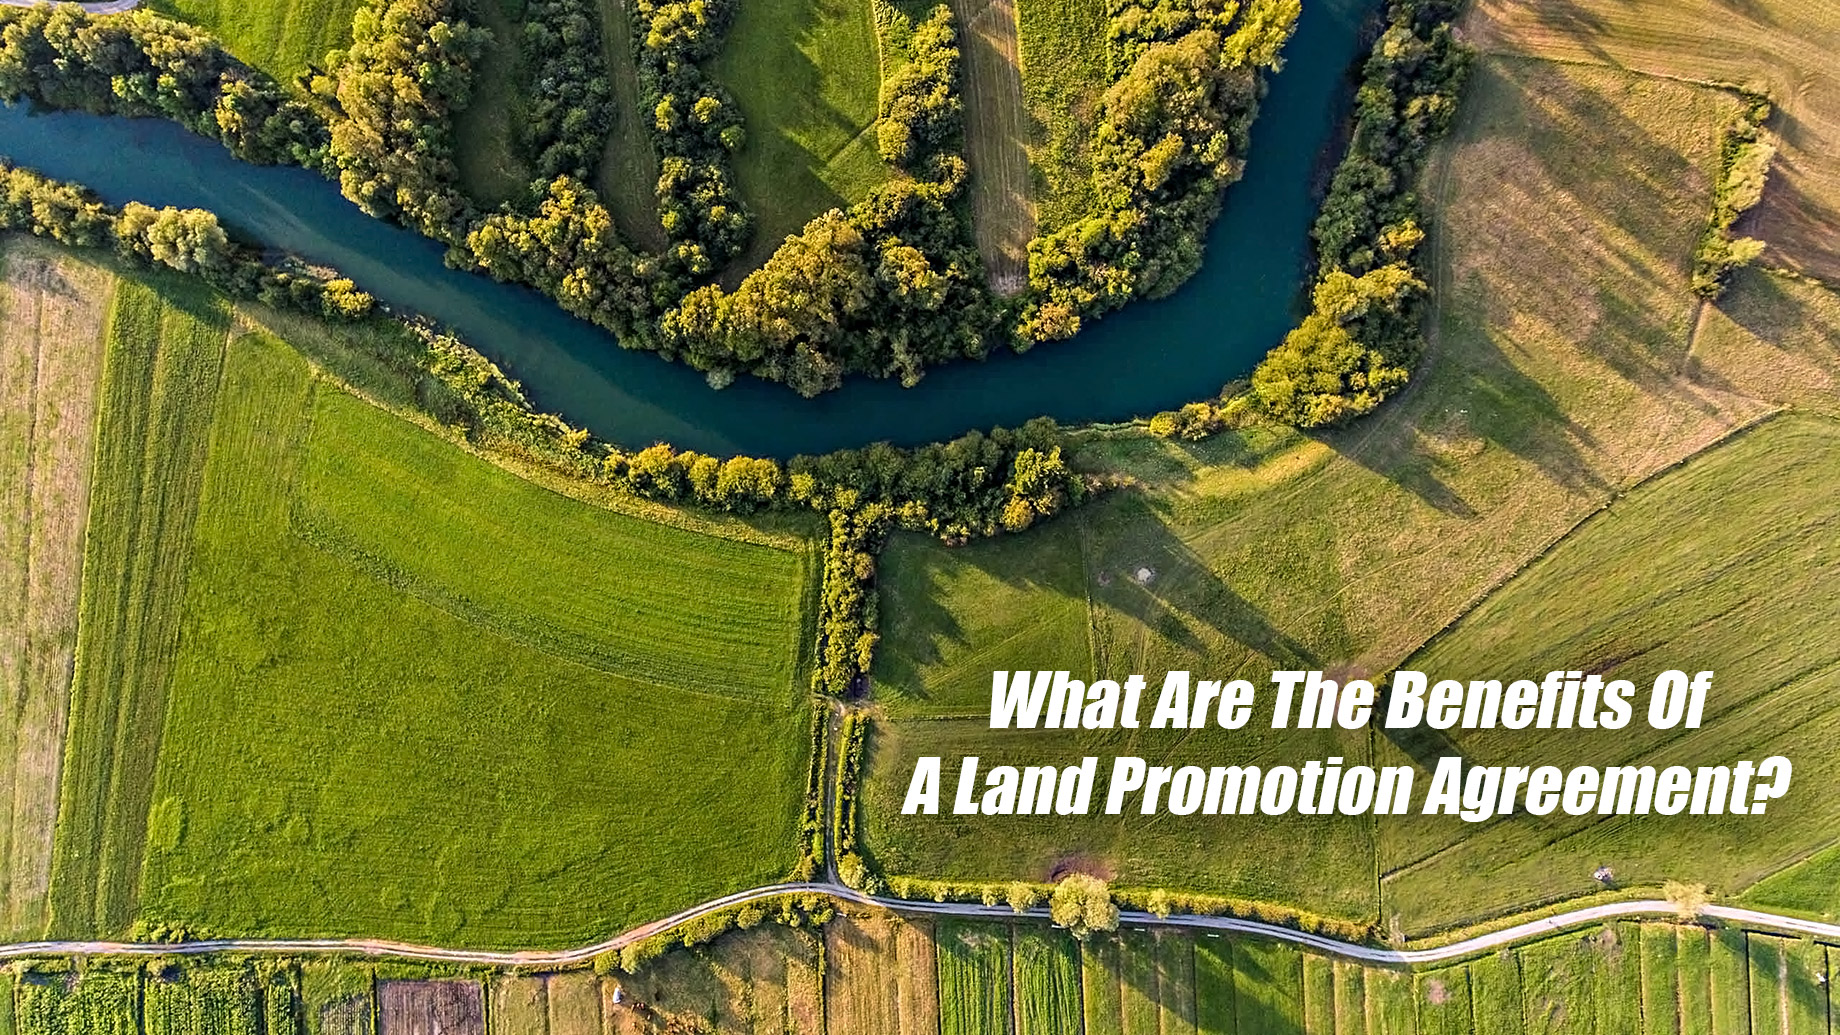 What Are The Benefits Of A Land Promotion Agreement?